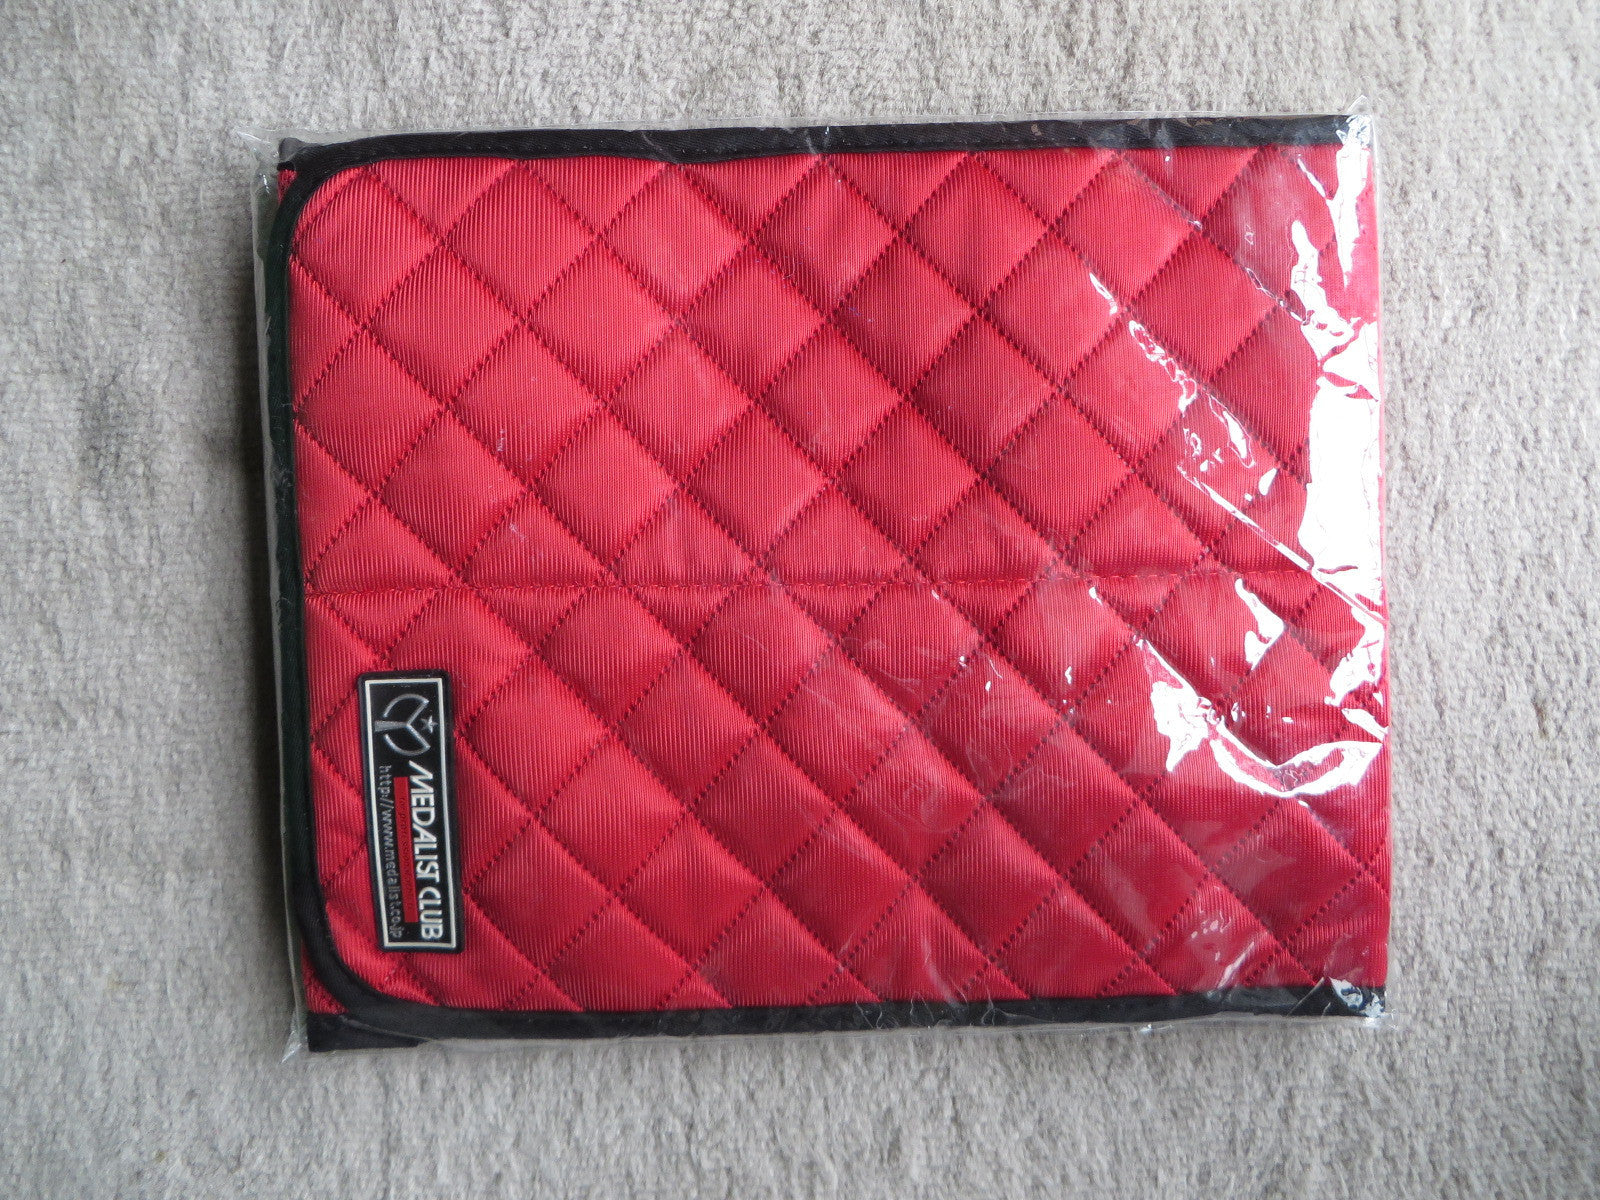 NOS Medalist Club Tire Case Red